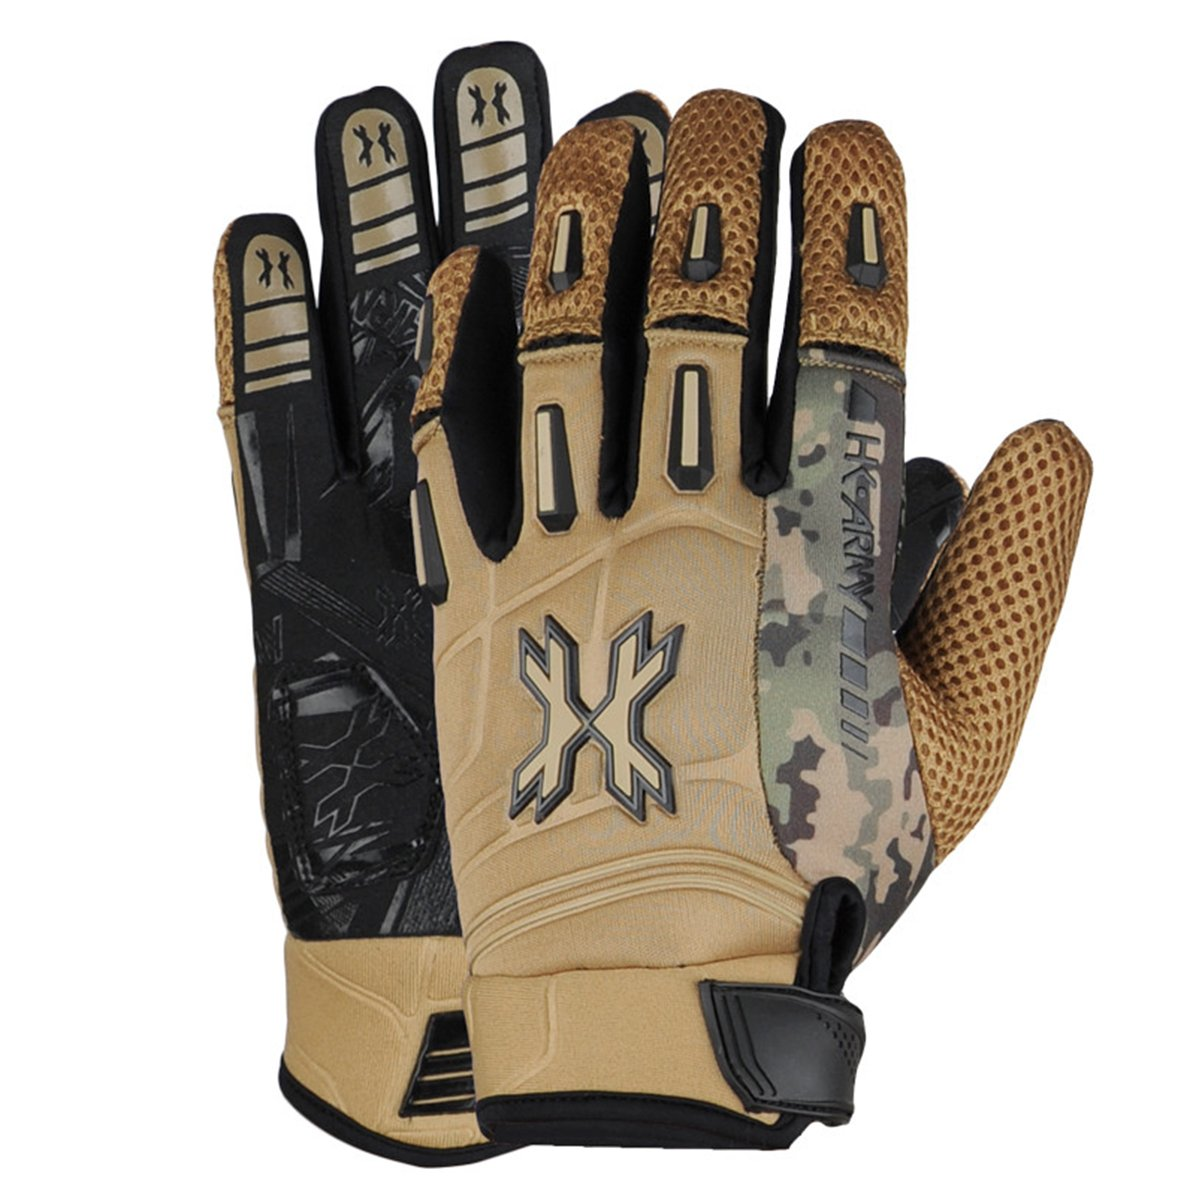 HK Army Pro Gloves - Full Finger - Tan Camo - XL by HK Army